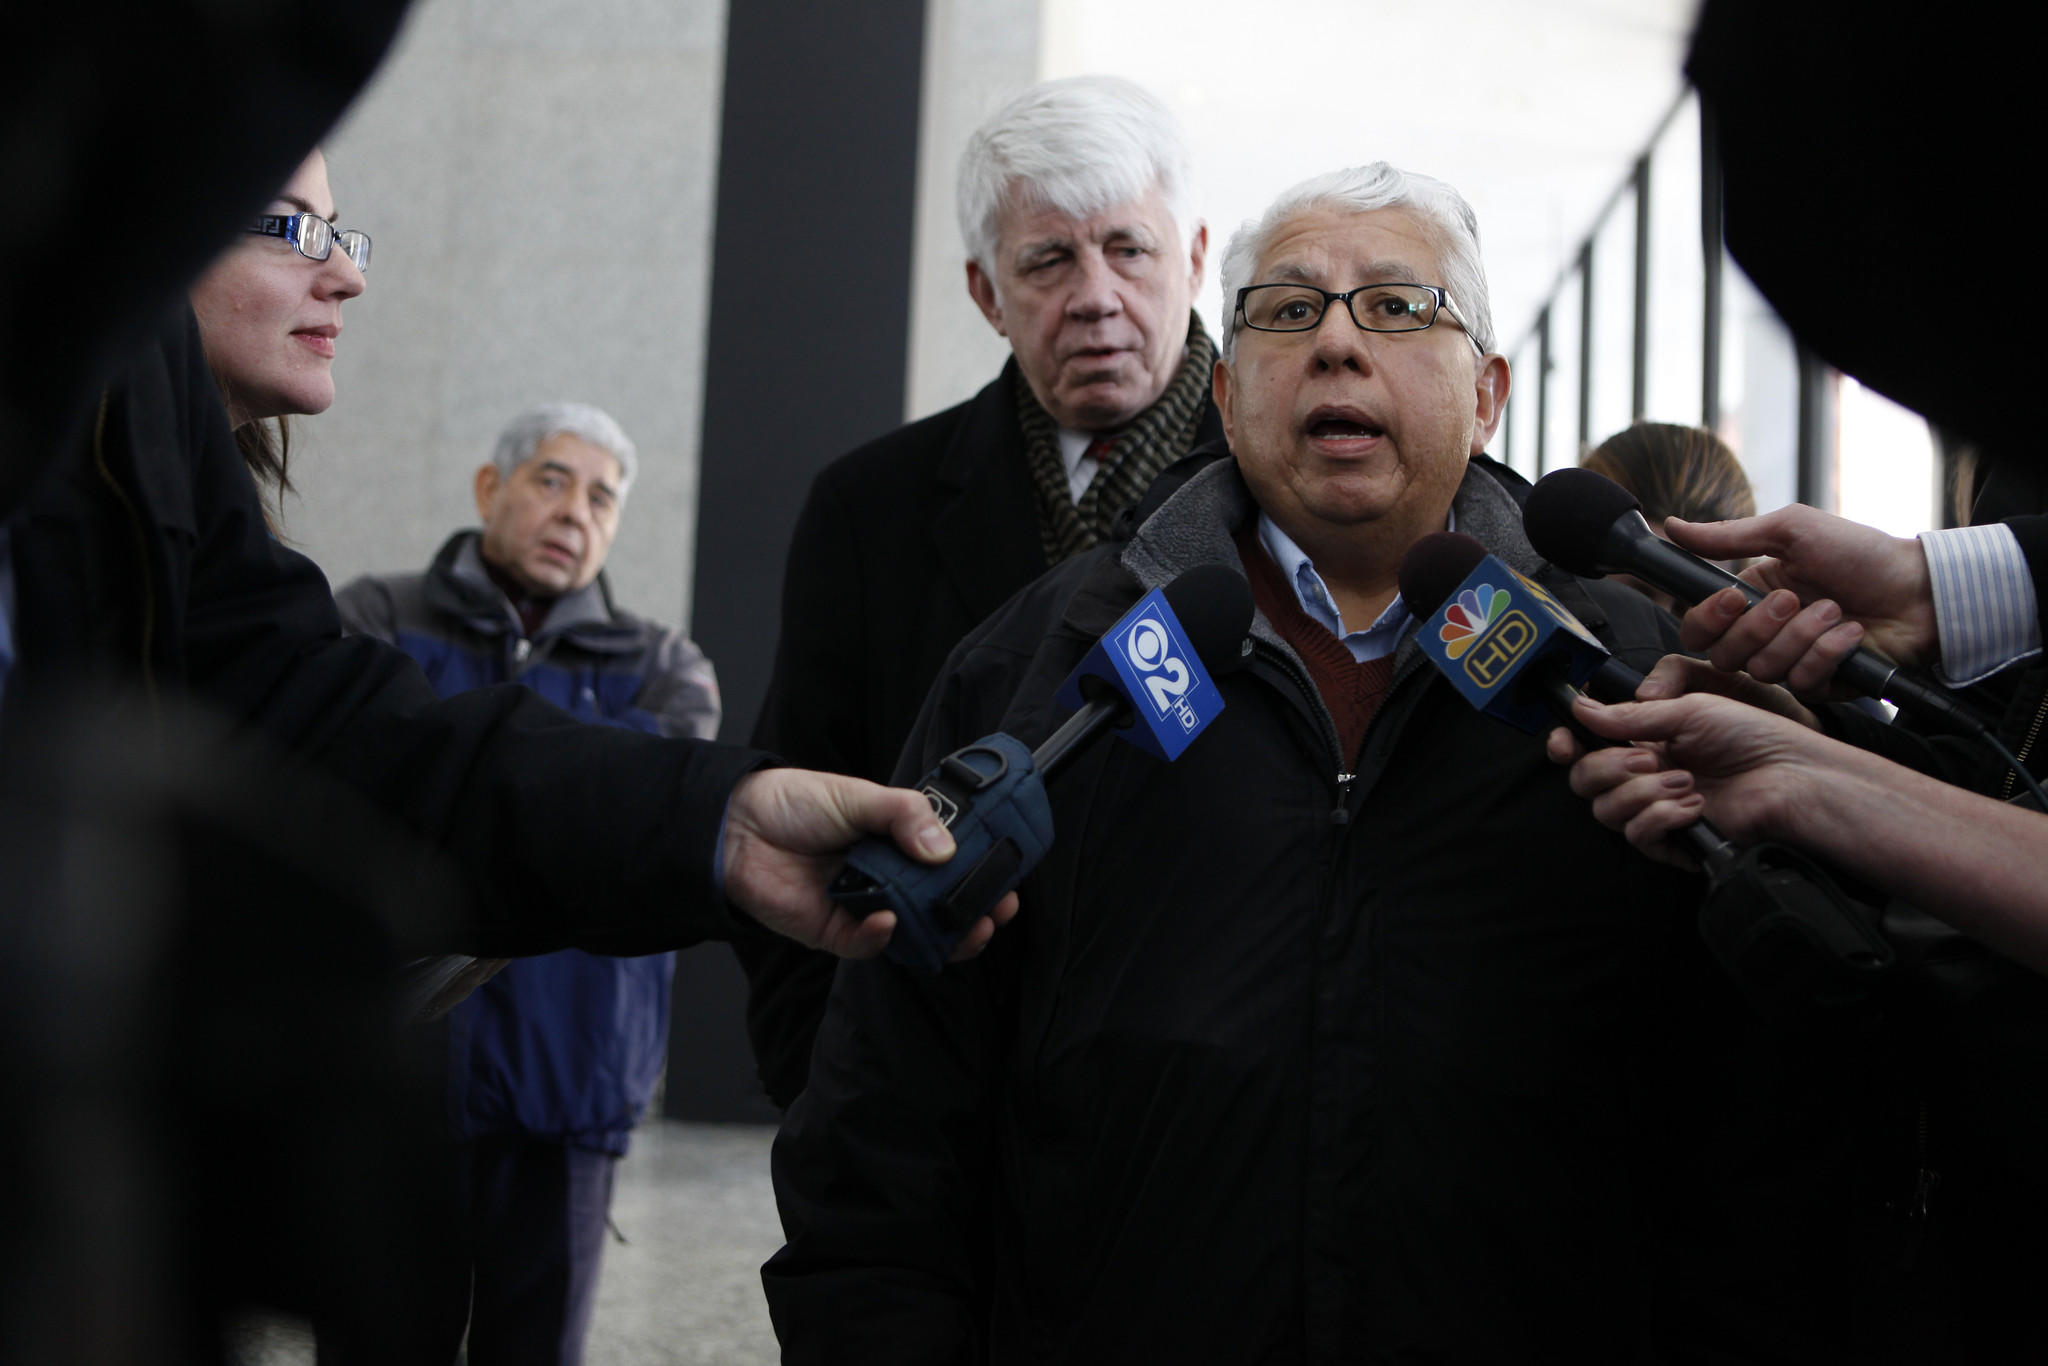 Al Sanchez, right, and his attorney Tom Breen, talk to the media following his sentencing seen here at the Dirksen U.S. Courthouse in Chicago on Thursday, February 3, 2011